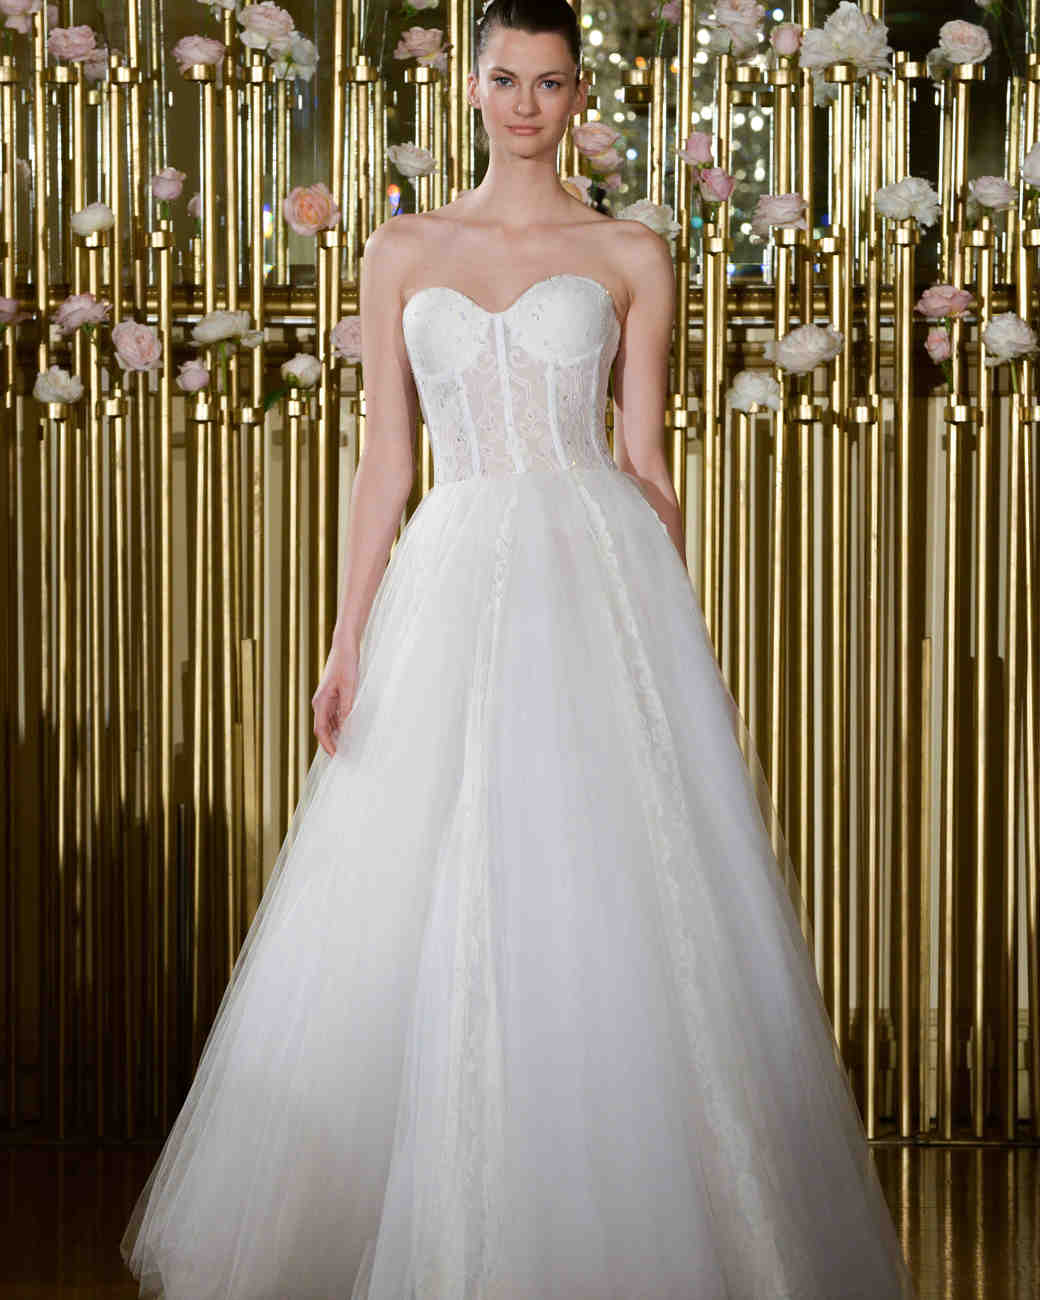 Francesca Miranda Strapless Ball Gown Wedding Dress Spring 2018